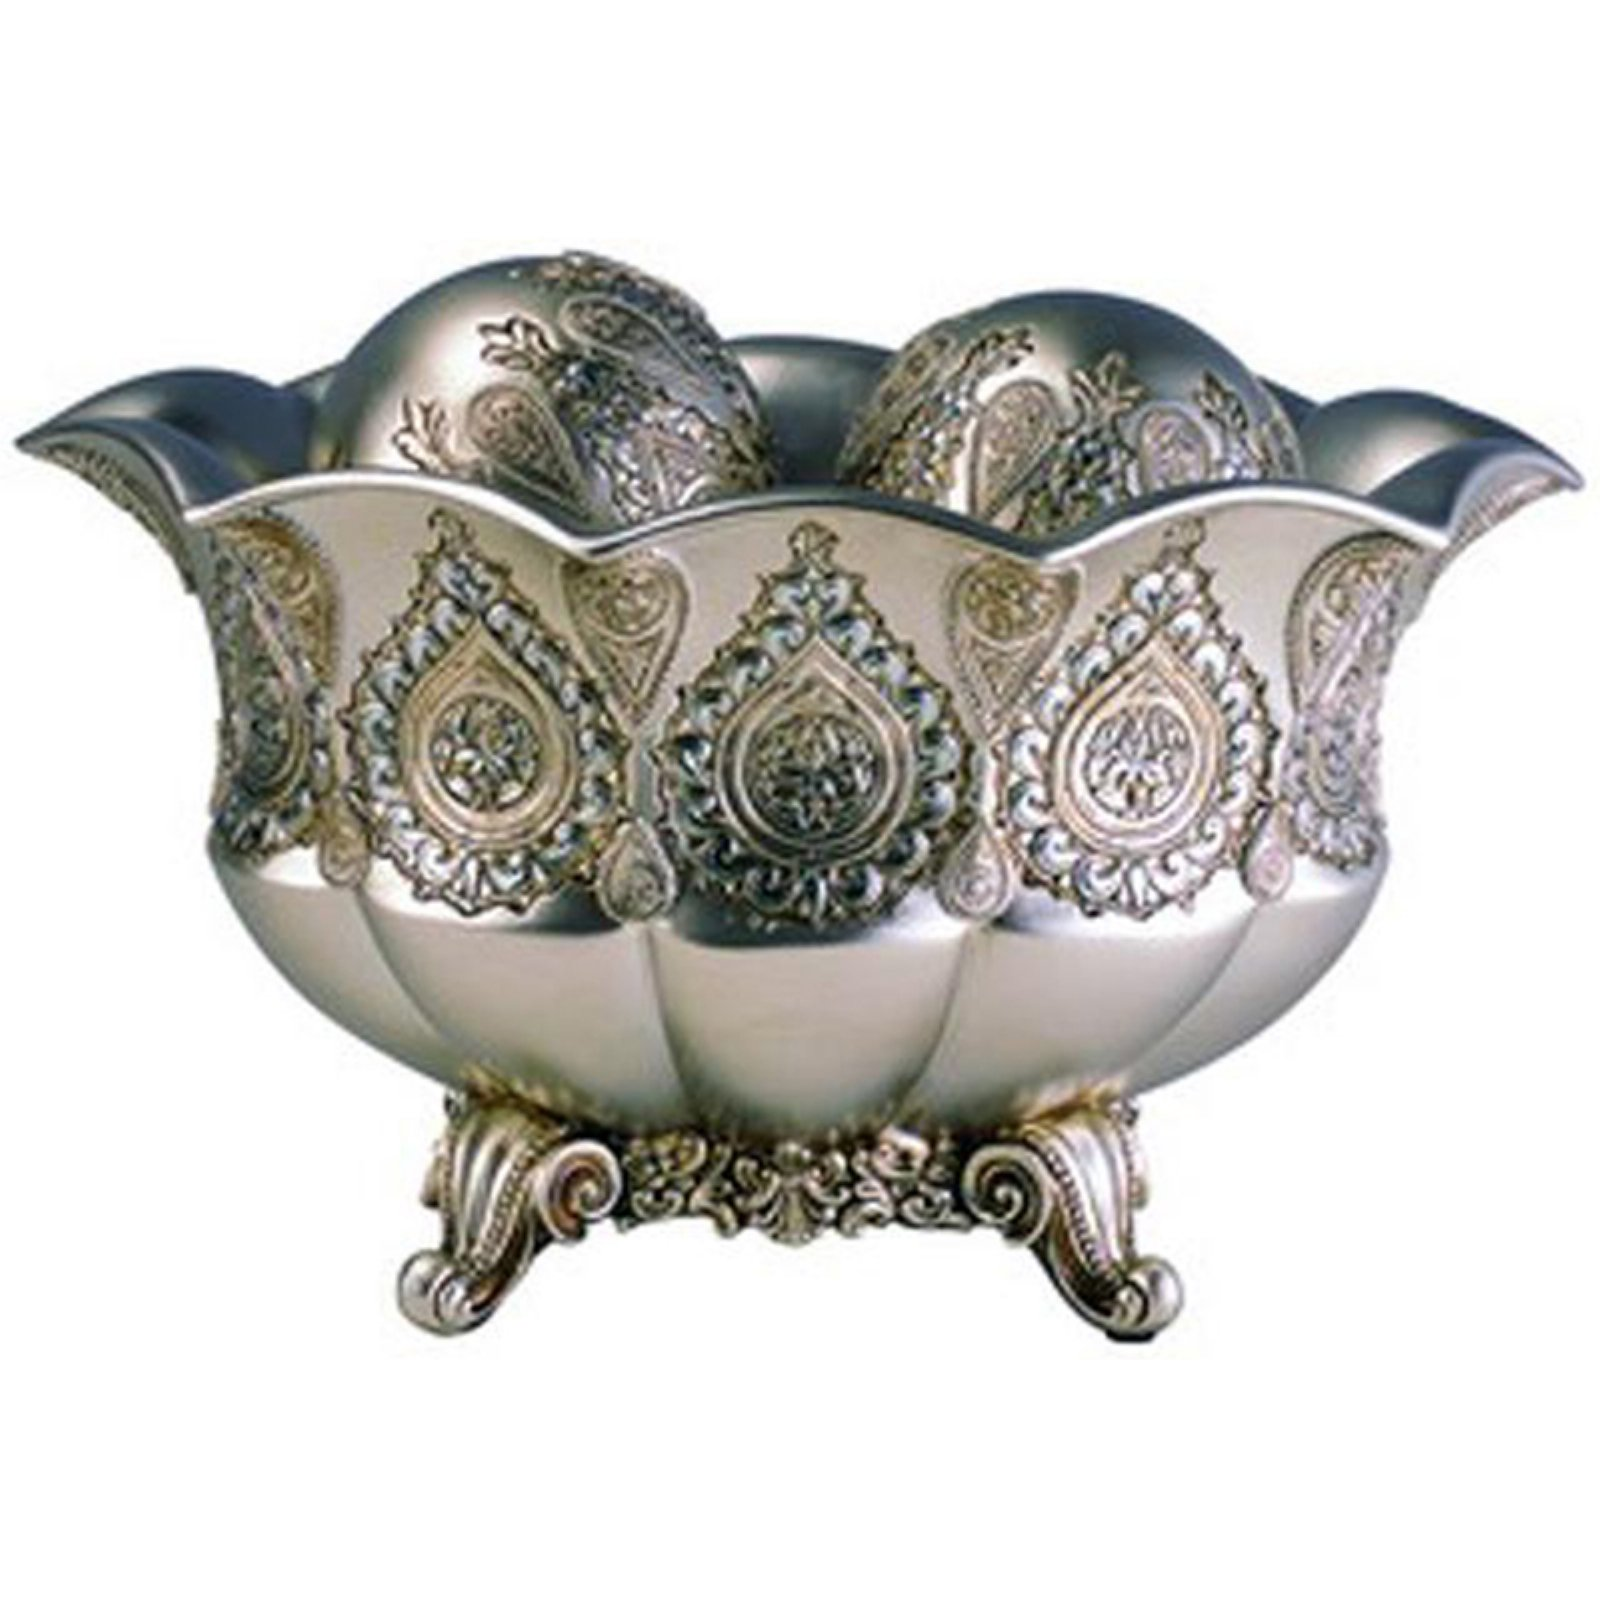 Ore International Traditional Royal Silver & Gold Metallic Decorative Bowl with Spheres - 7H in.